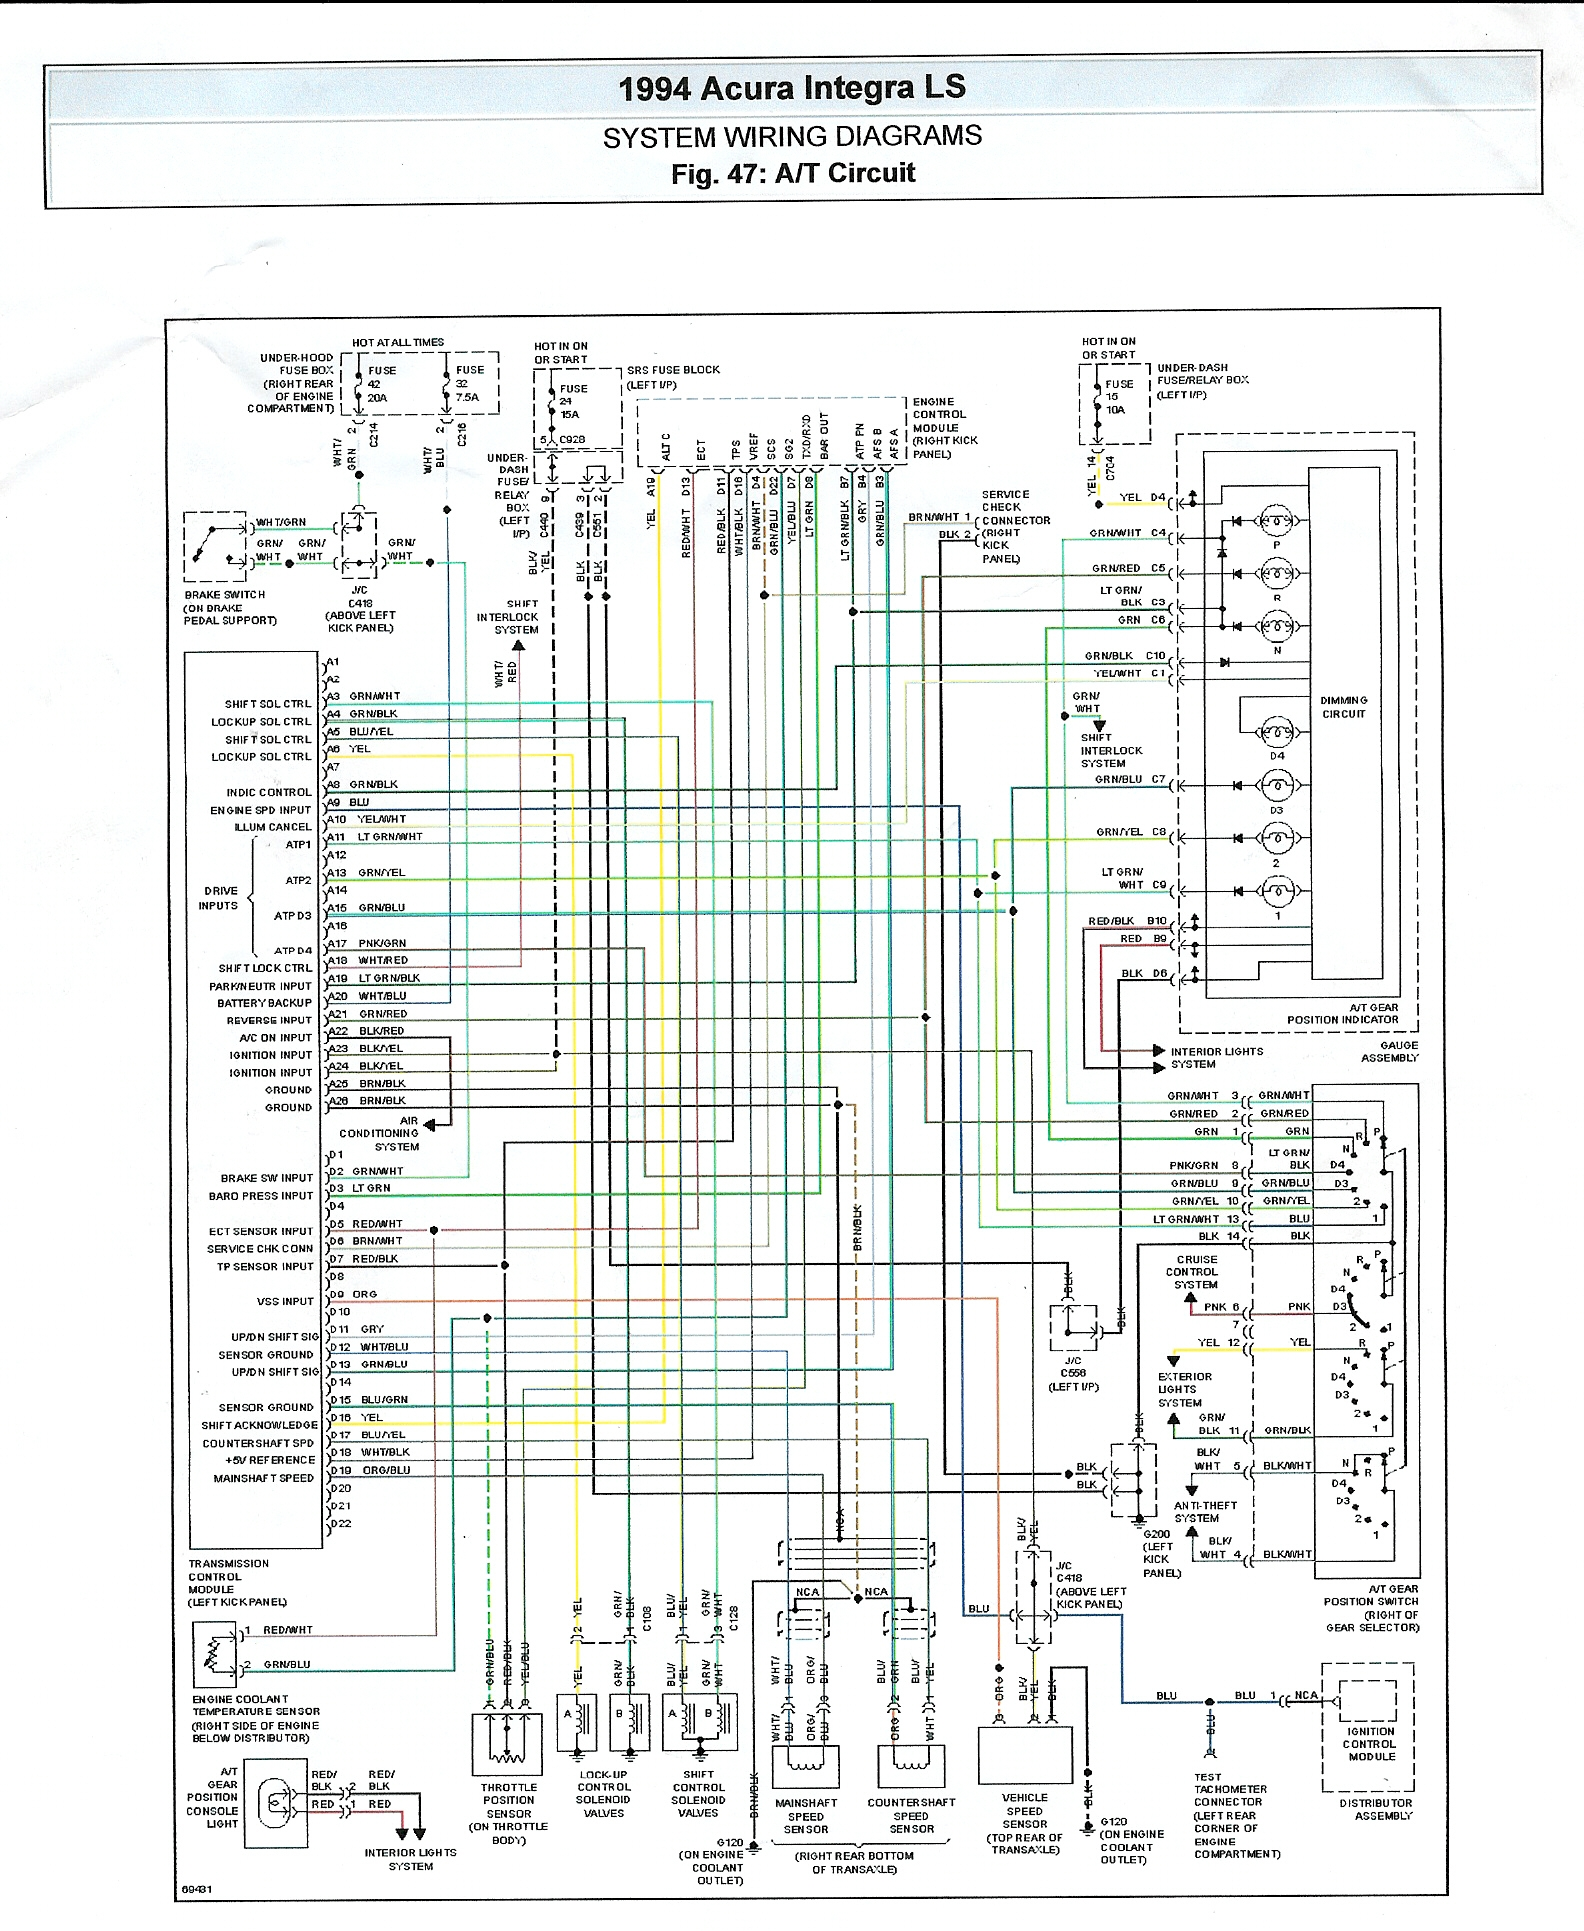 Wiring Schematic For 90 Integra - seniorsclub.it device-growth -  device-growth.pietrodavico.itPietro da Vico